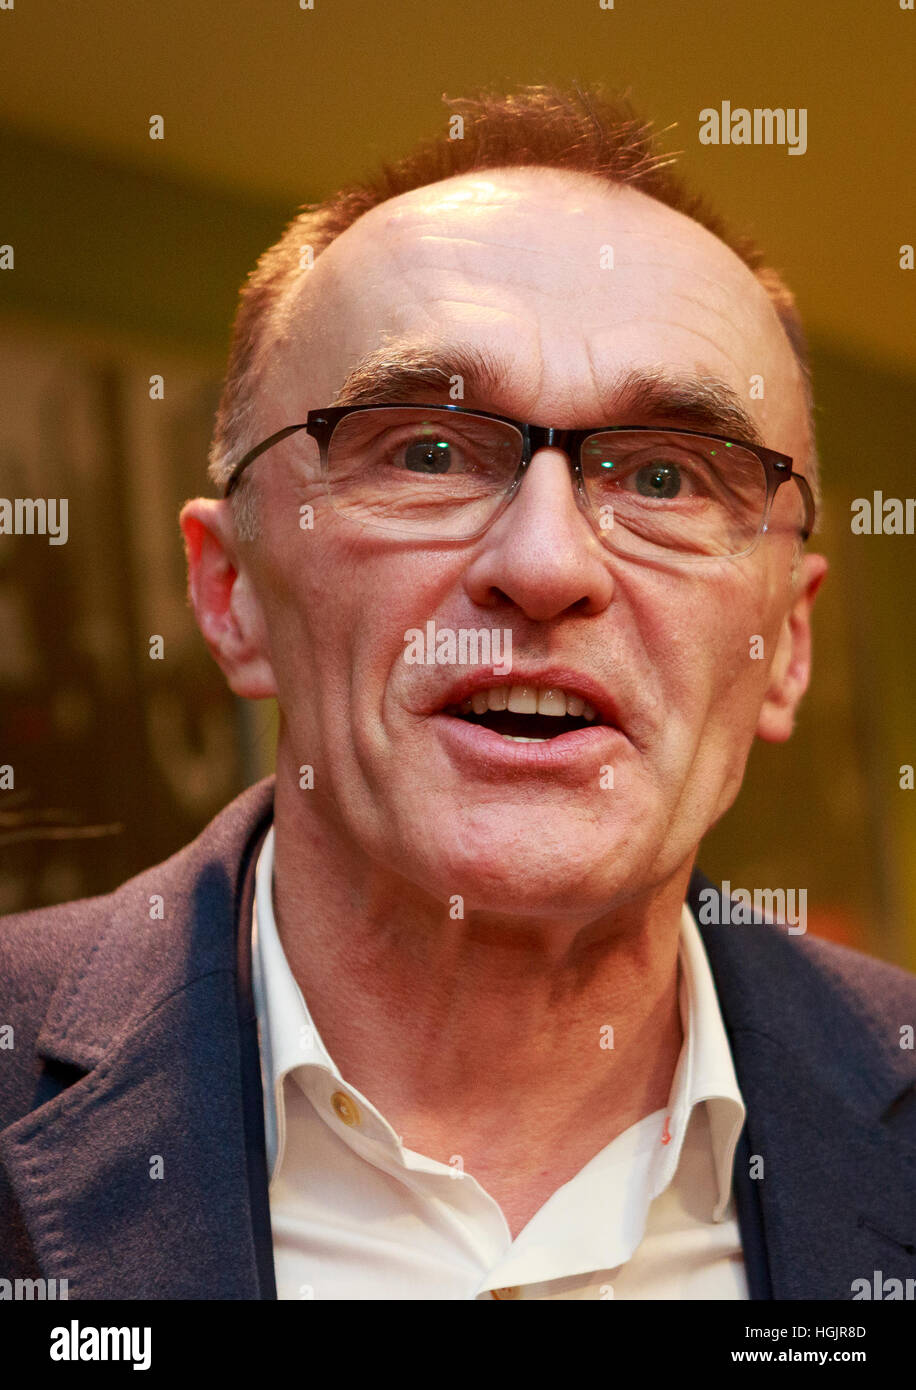 Edinburgh, UK. 22nd January, 2017. T2 Trainspotting premiere at Edinburgh Cineworld. Scotland. Pictured Danny Boyle. - Stock Image